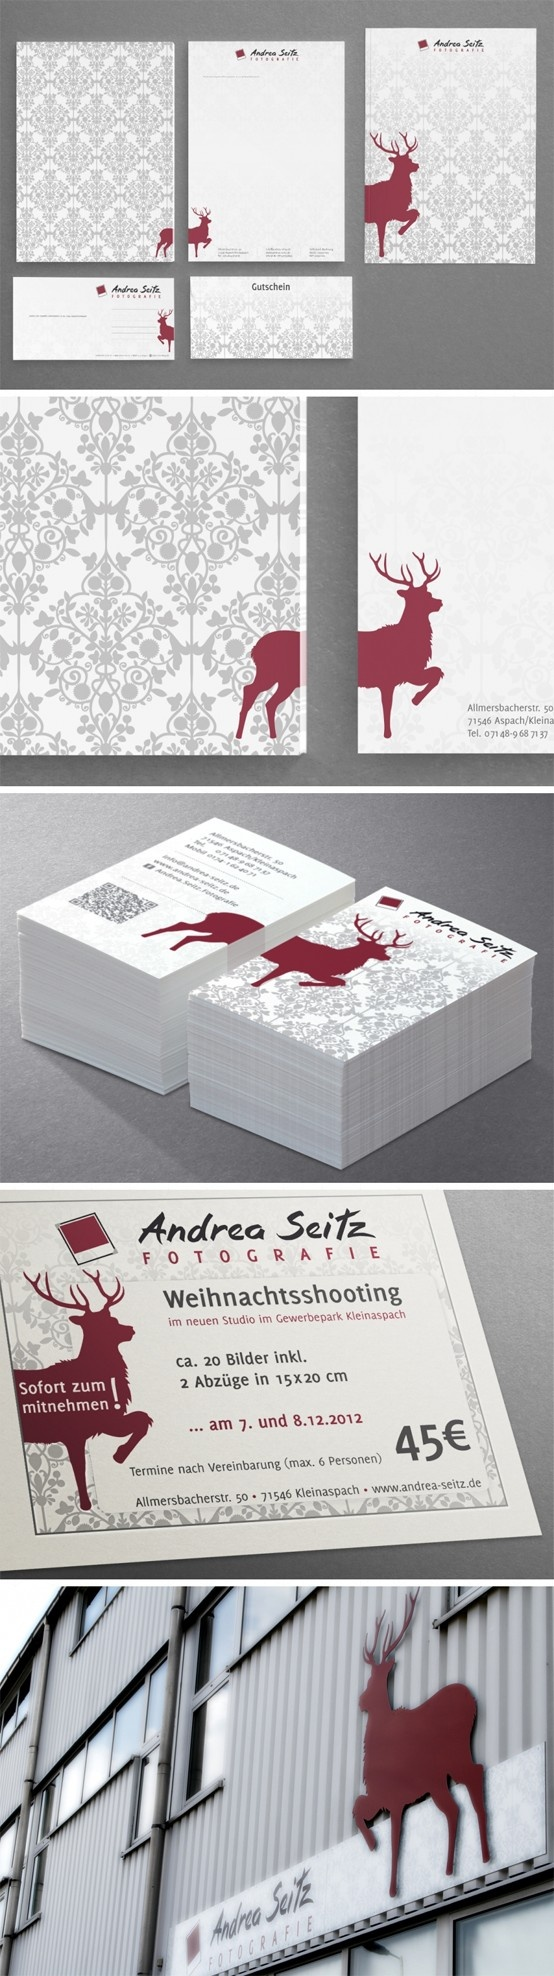 corporate design for Andrea Seitz Fotografie | #stationary #corporate #design #corporatedesign #logo #identity #branding #Germany | made with love in Stuttgart by www.smoco.de